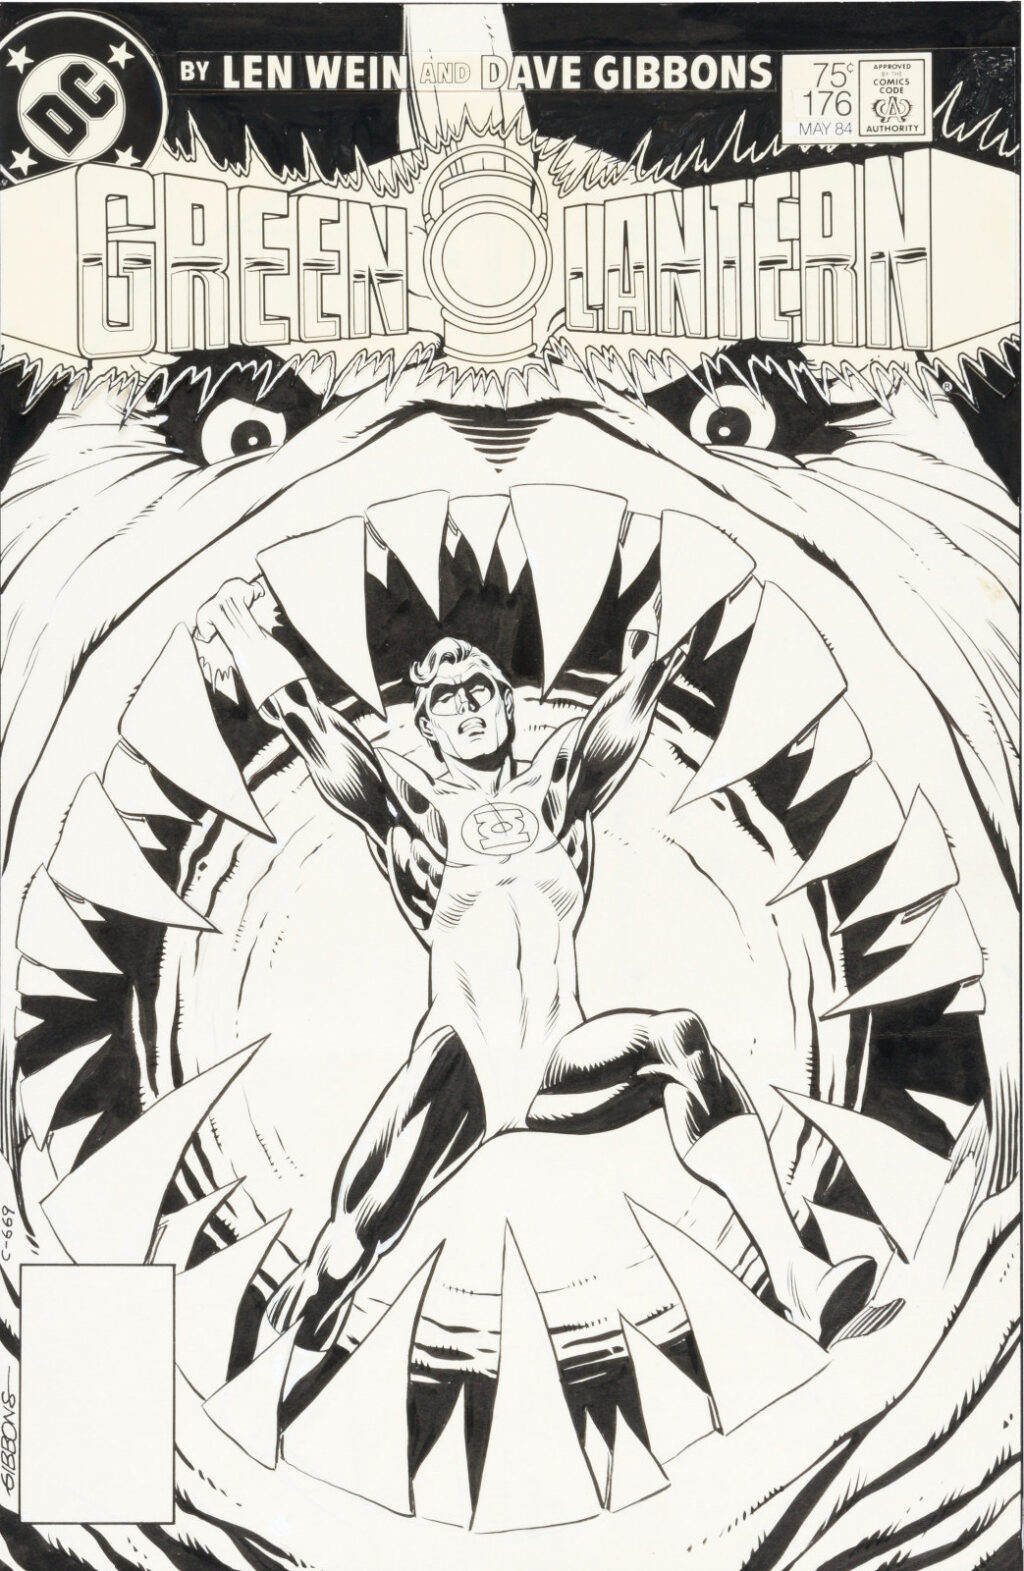 Green Lantern issue 176 cover by Dave Gibbons